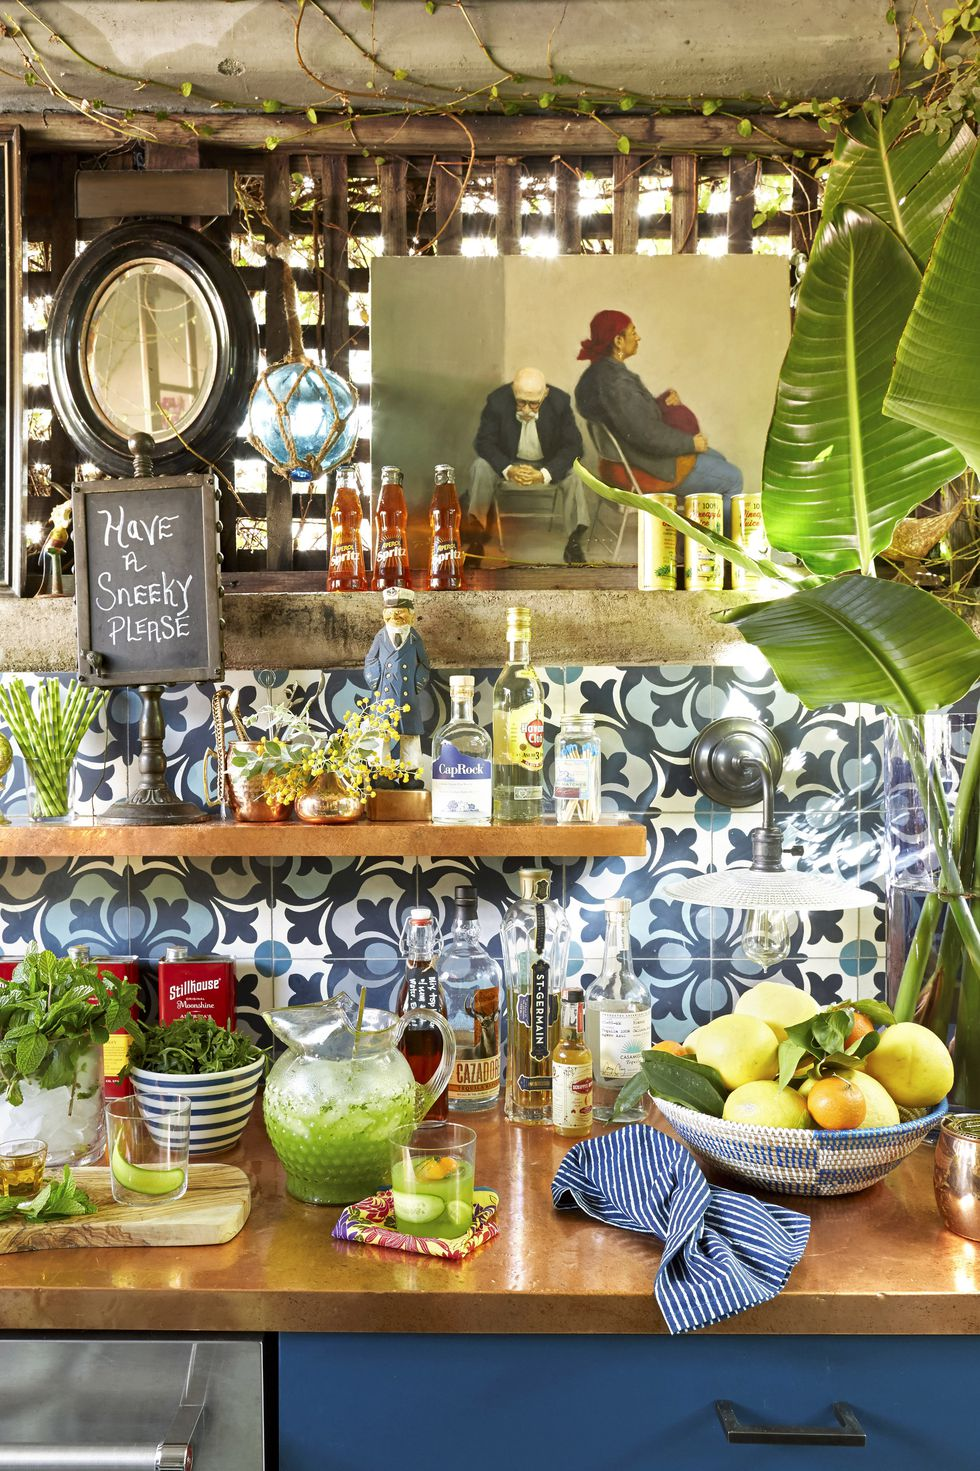 Summery kitchen with shelf, bottles including plants and artwork